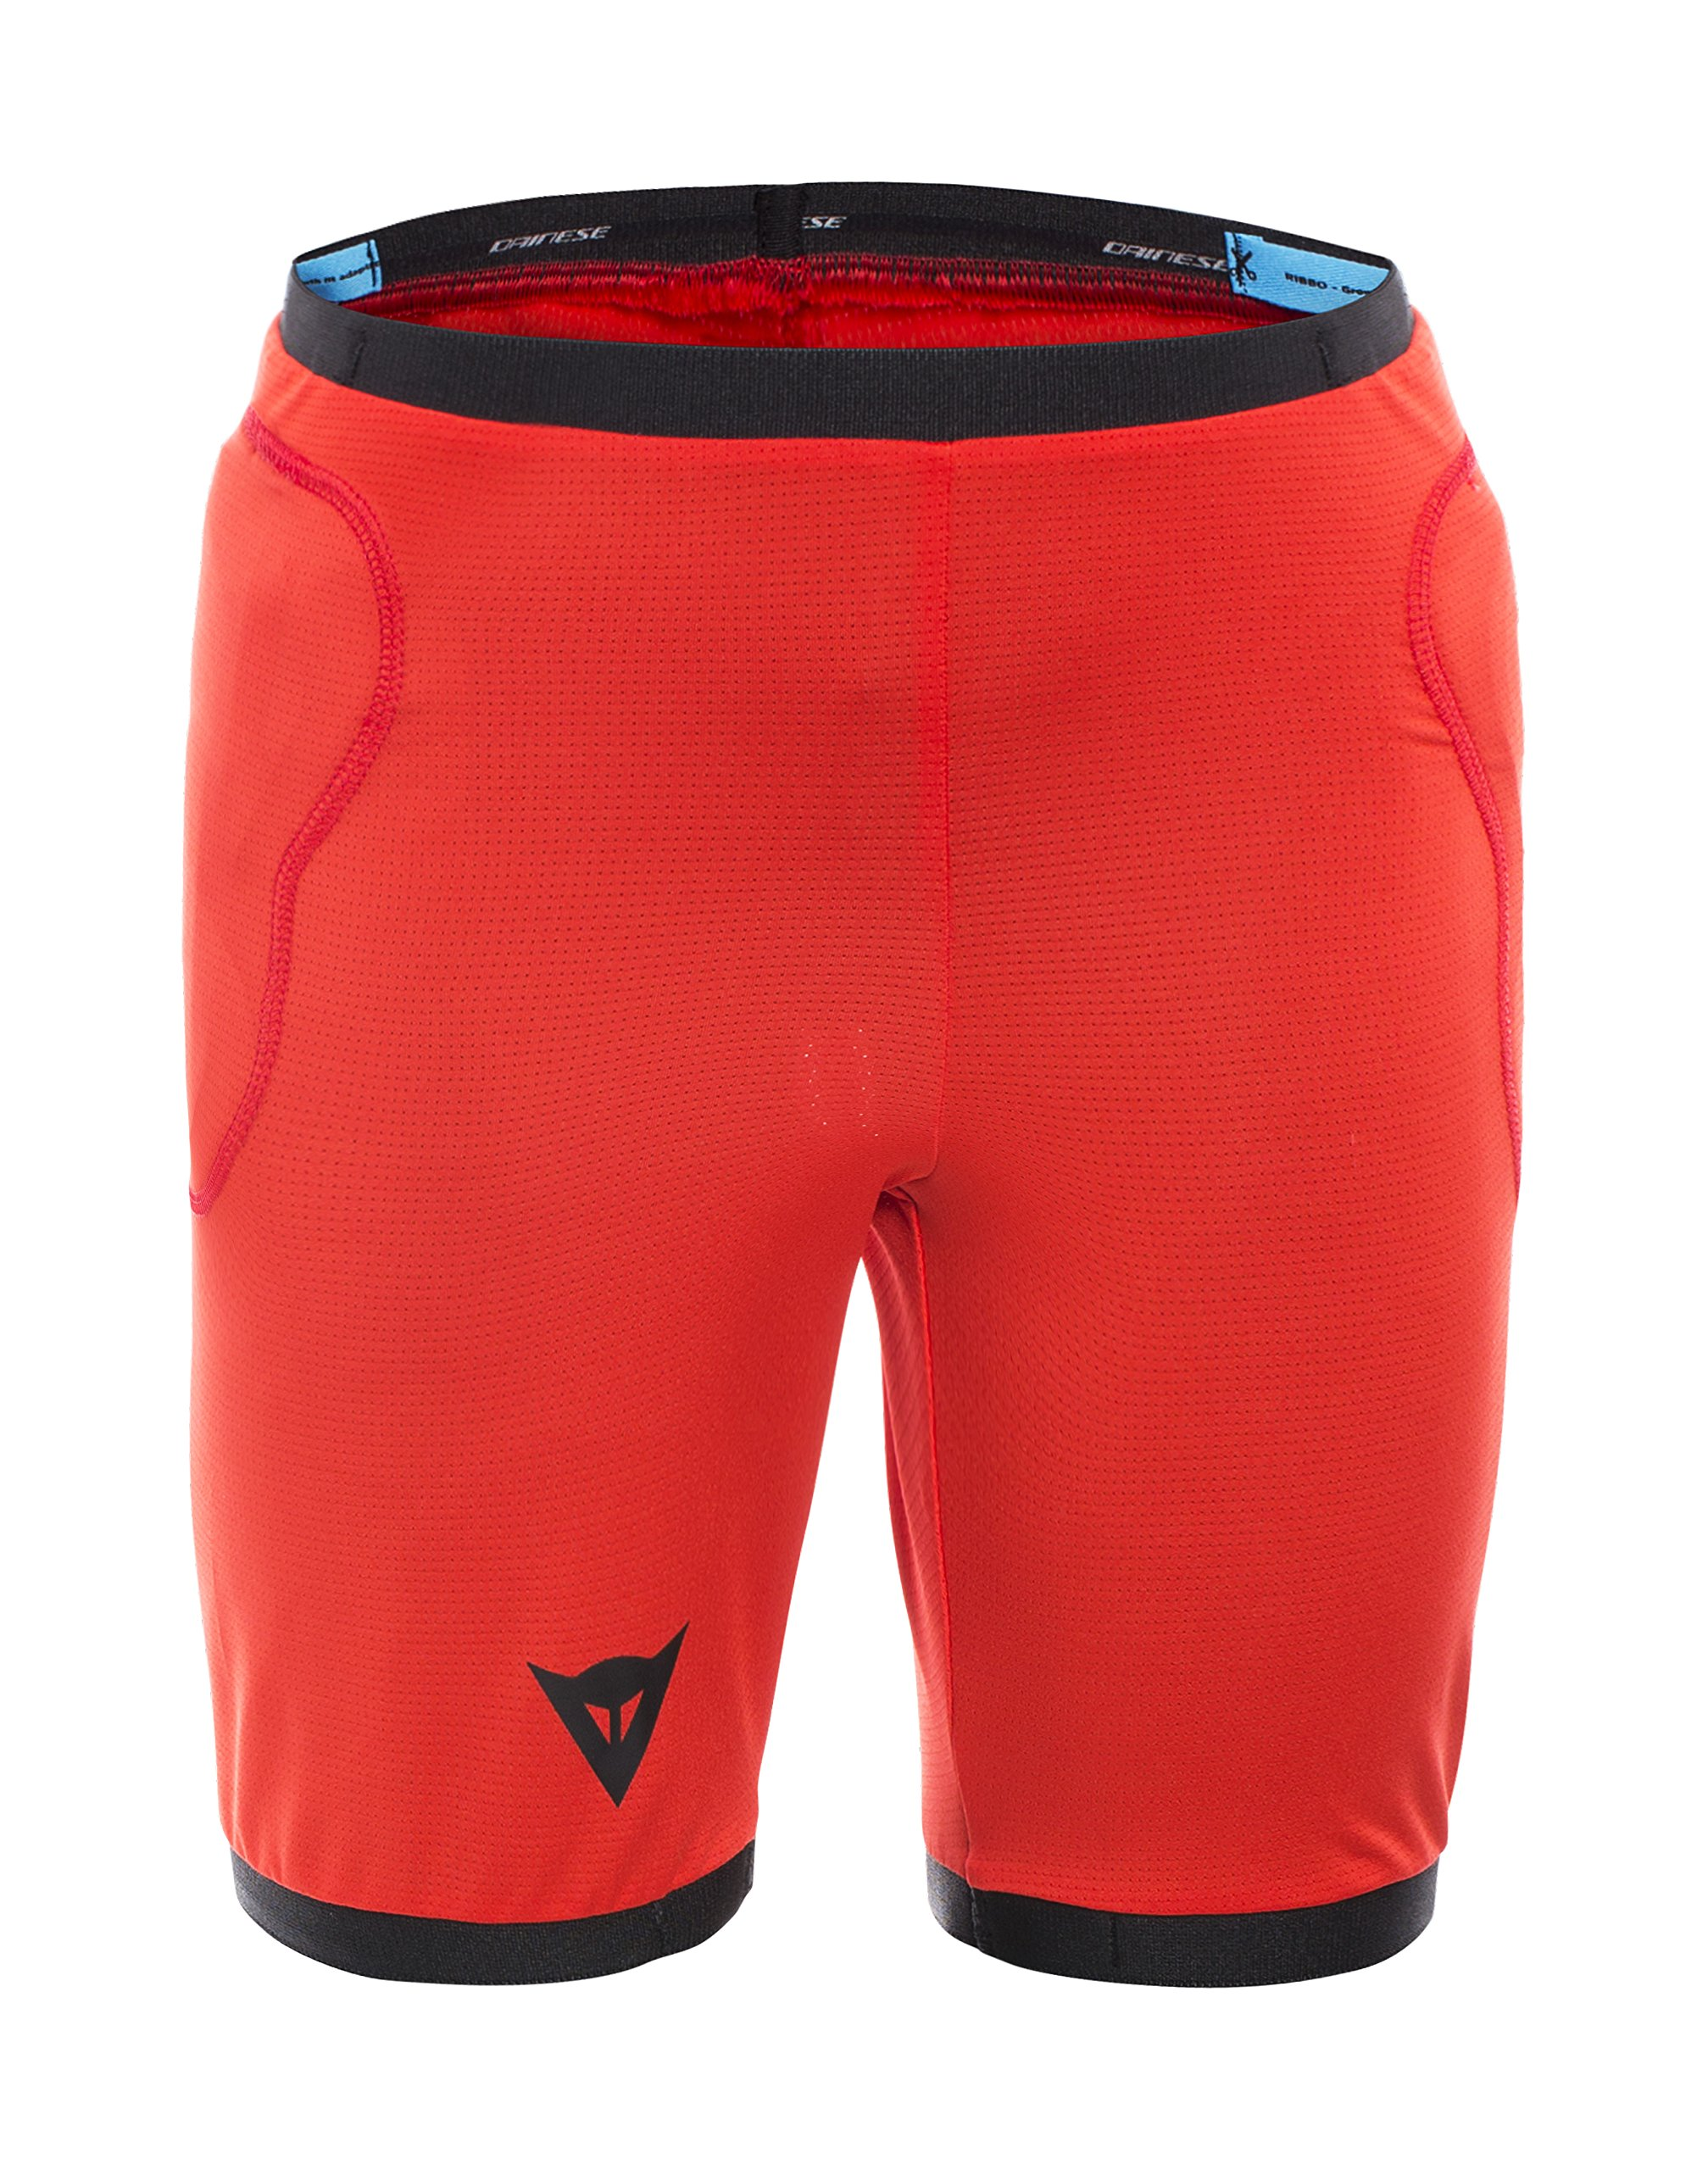 Dainese Scarabeo Safety Shorts, Kinder Hose mit Polstern MTB